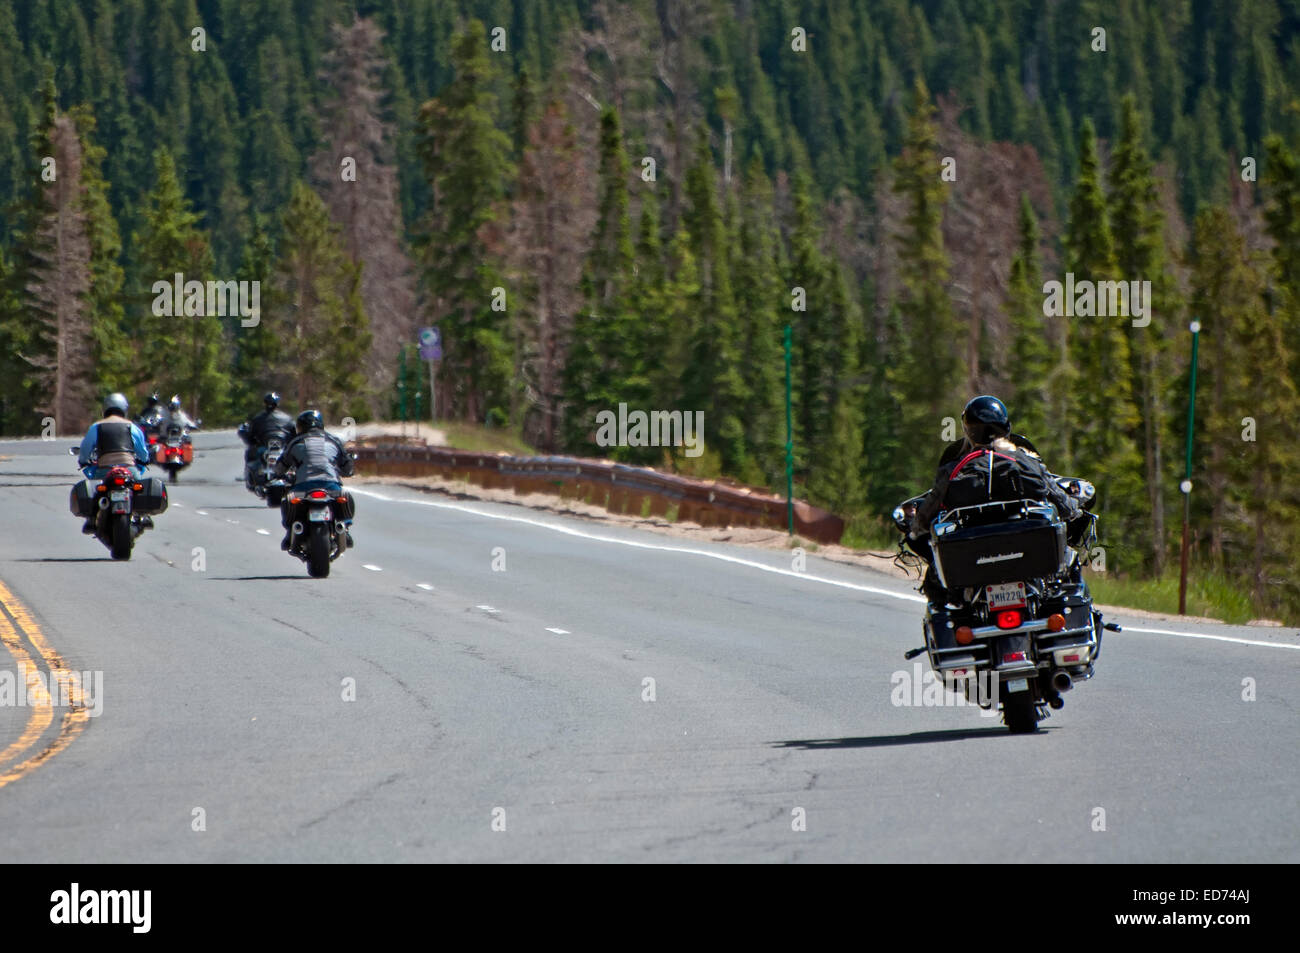 Bikers in Colorado - Stock Image